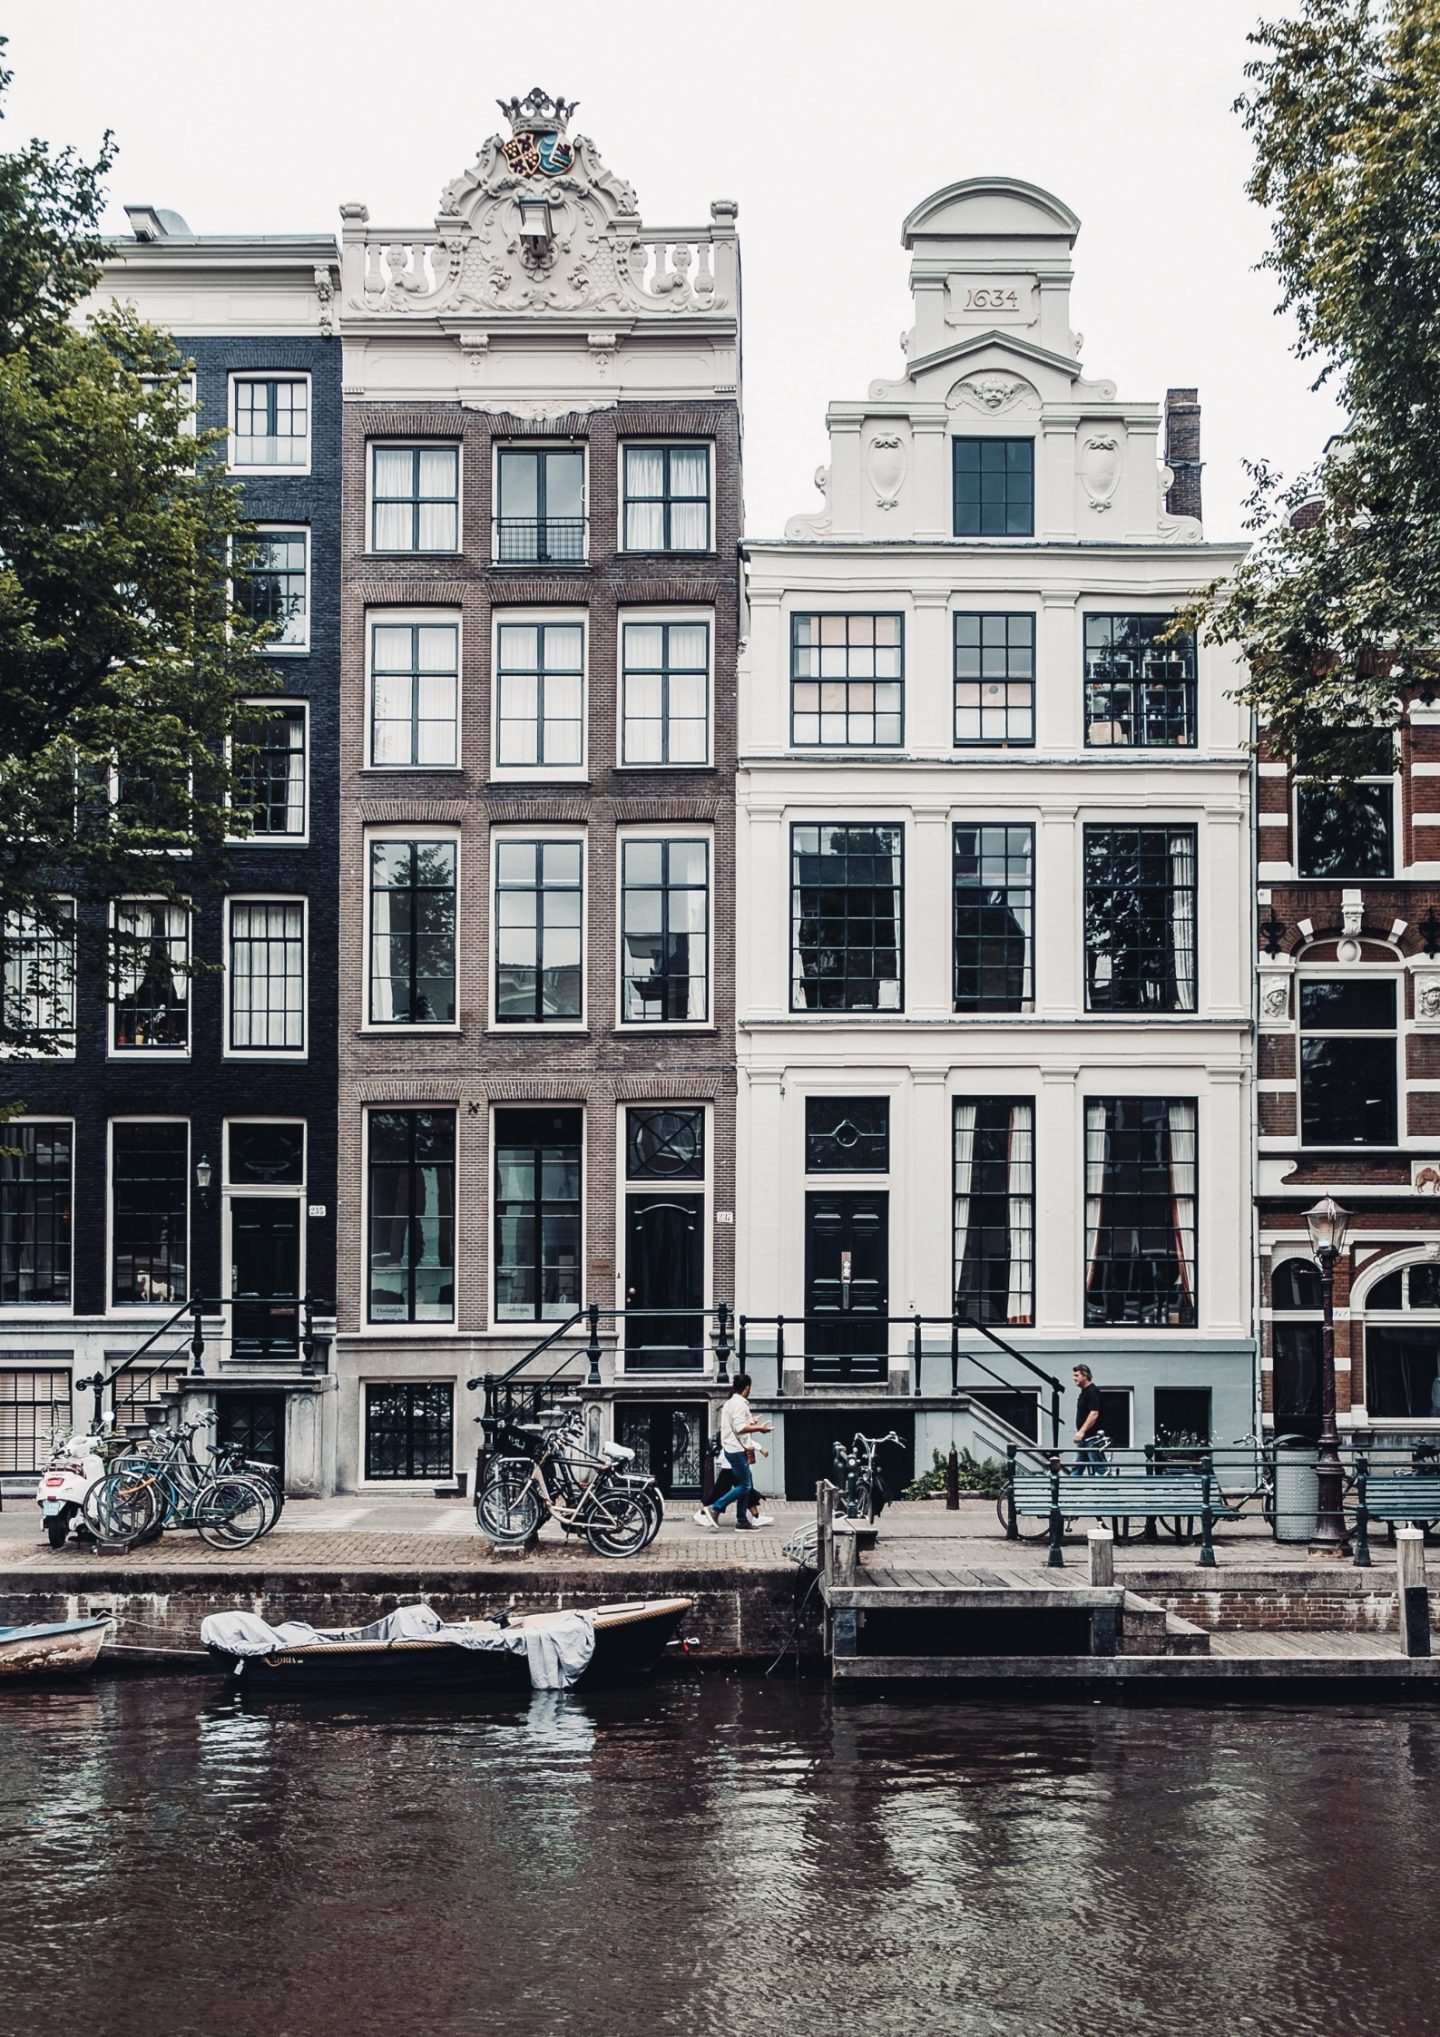 FIRST TIMERS GUIDE TO AMSTERDAM